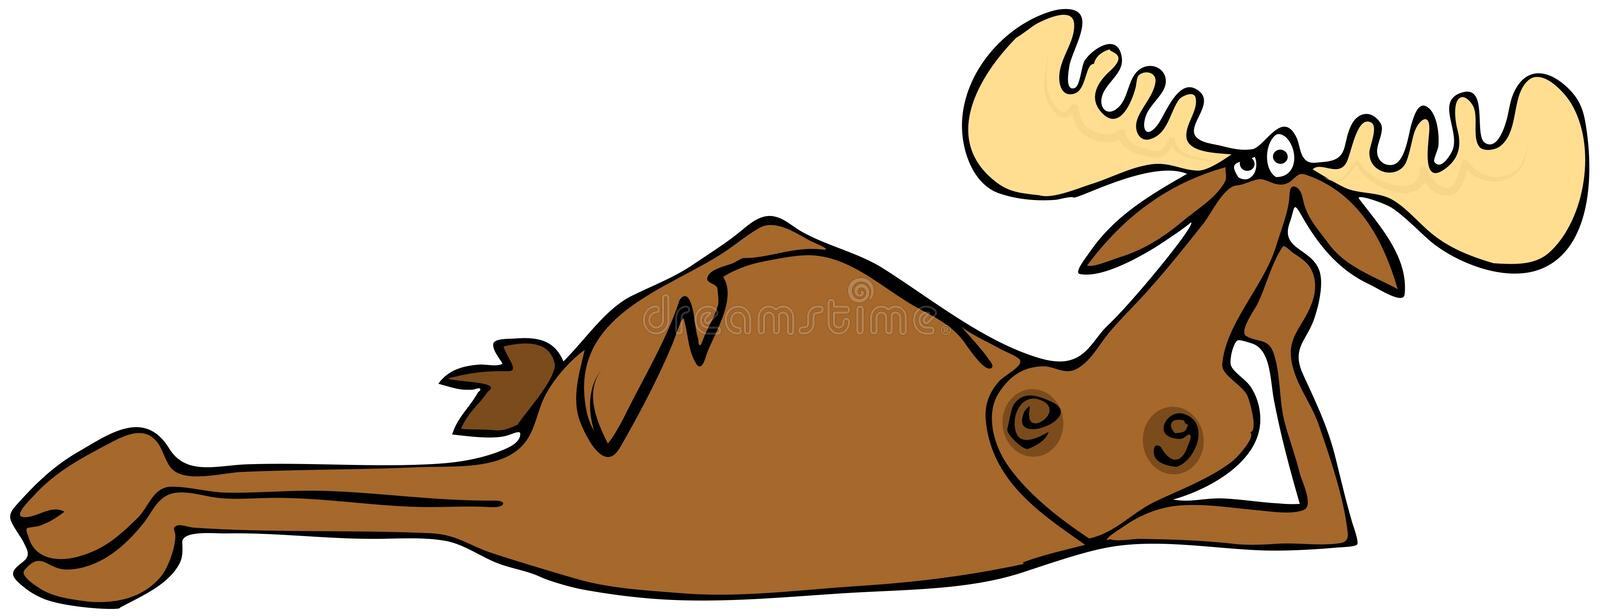 Relaxing moose vector illustration